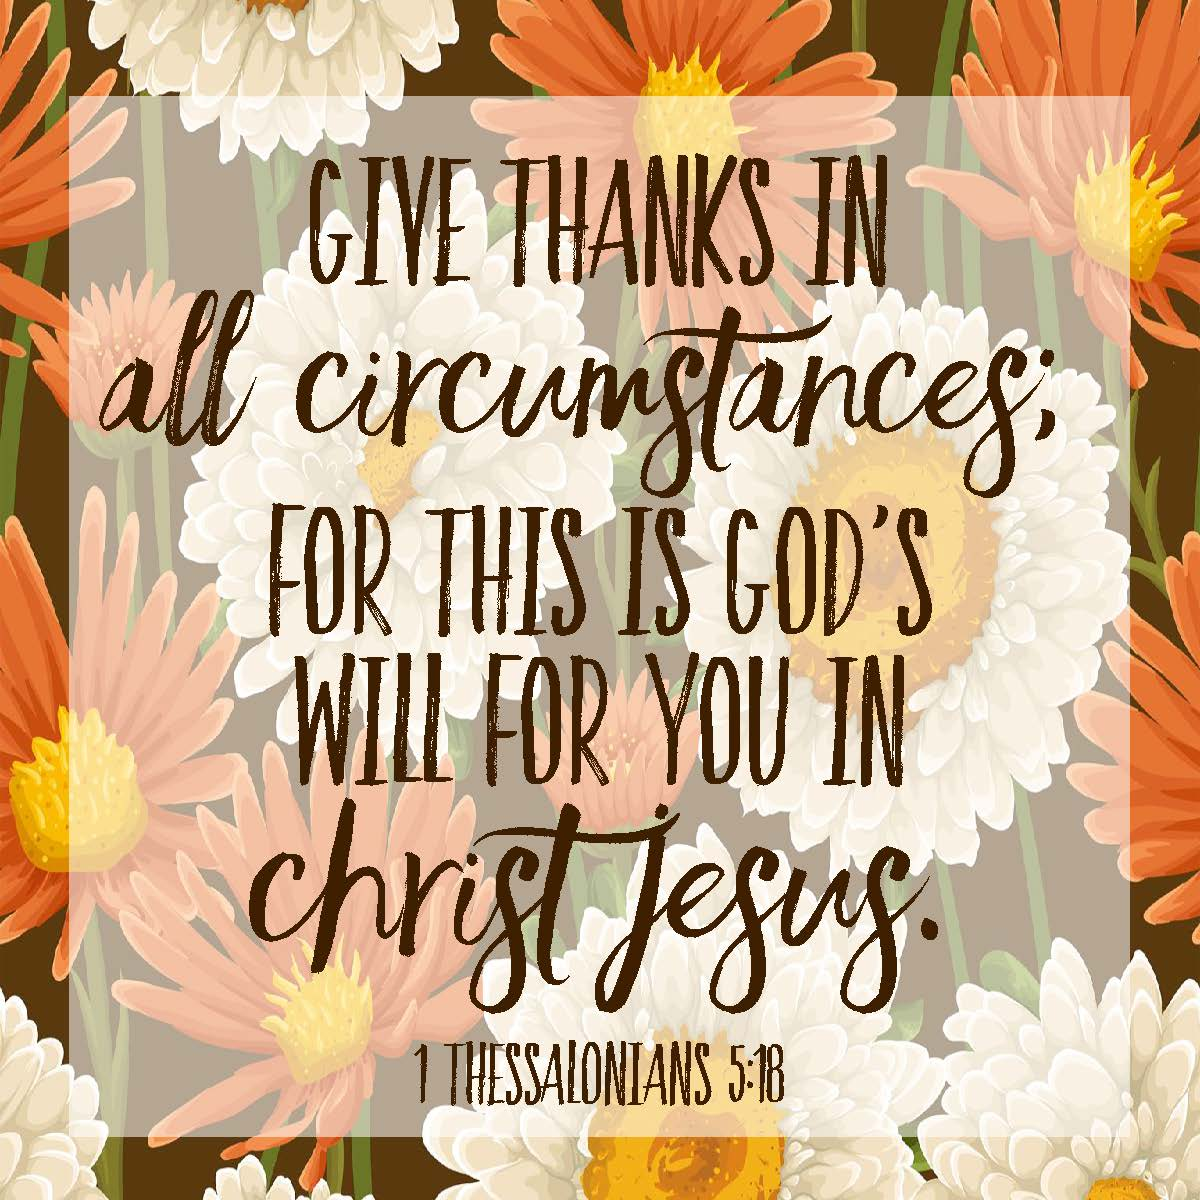 Sweet Blessings: Give Thanks